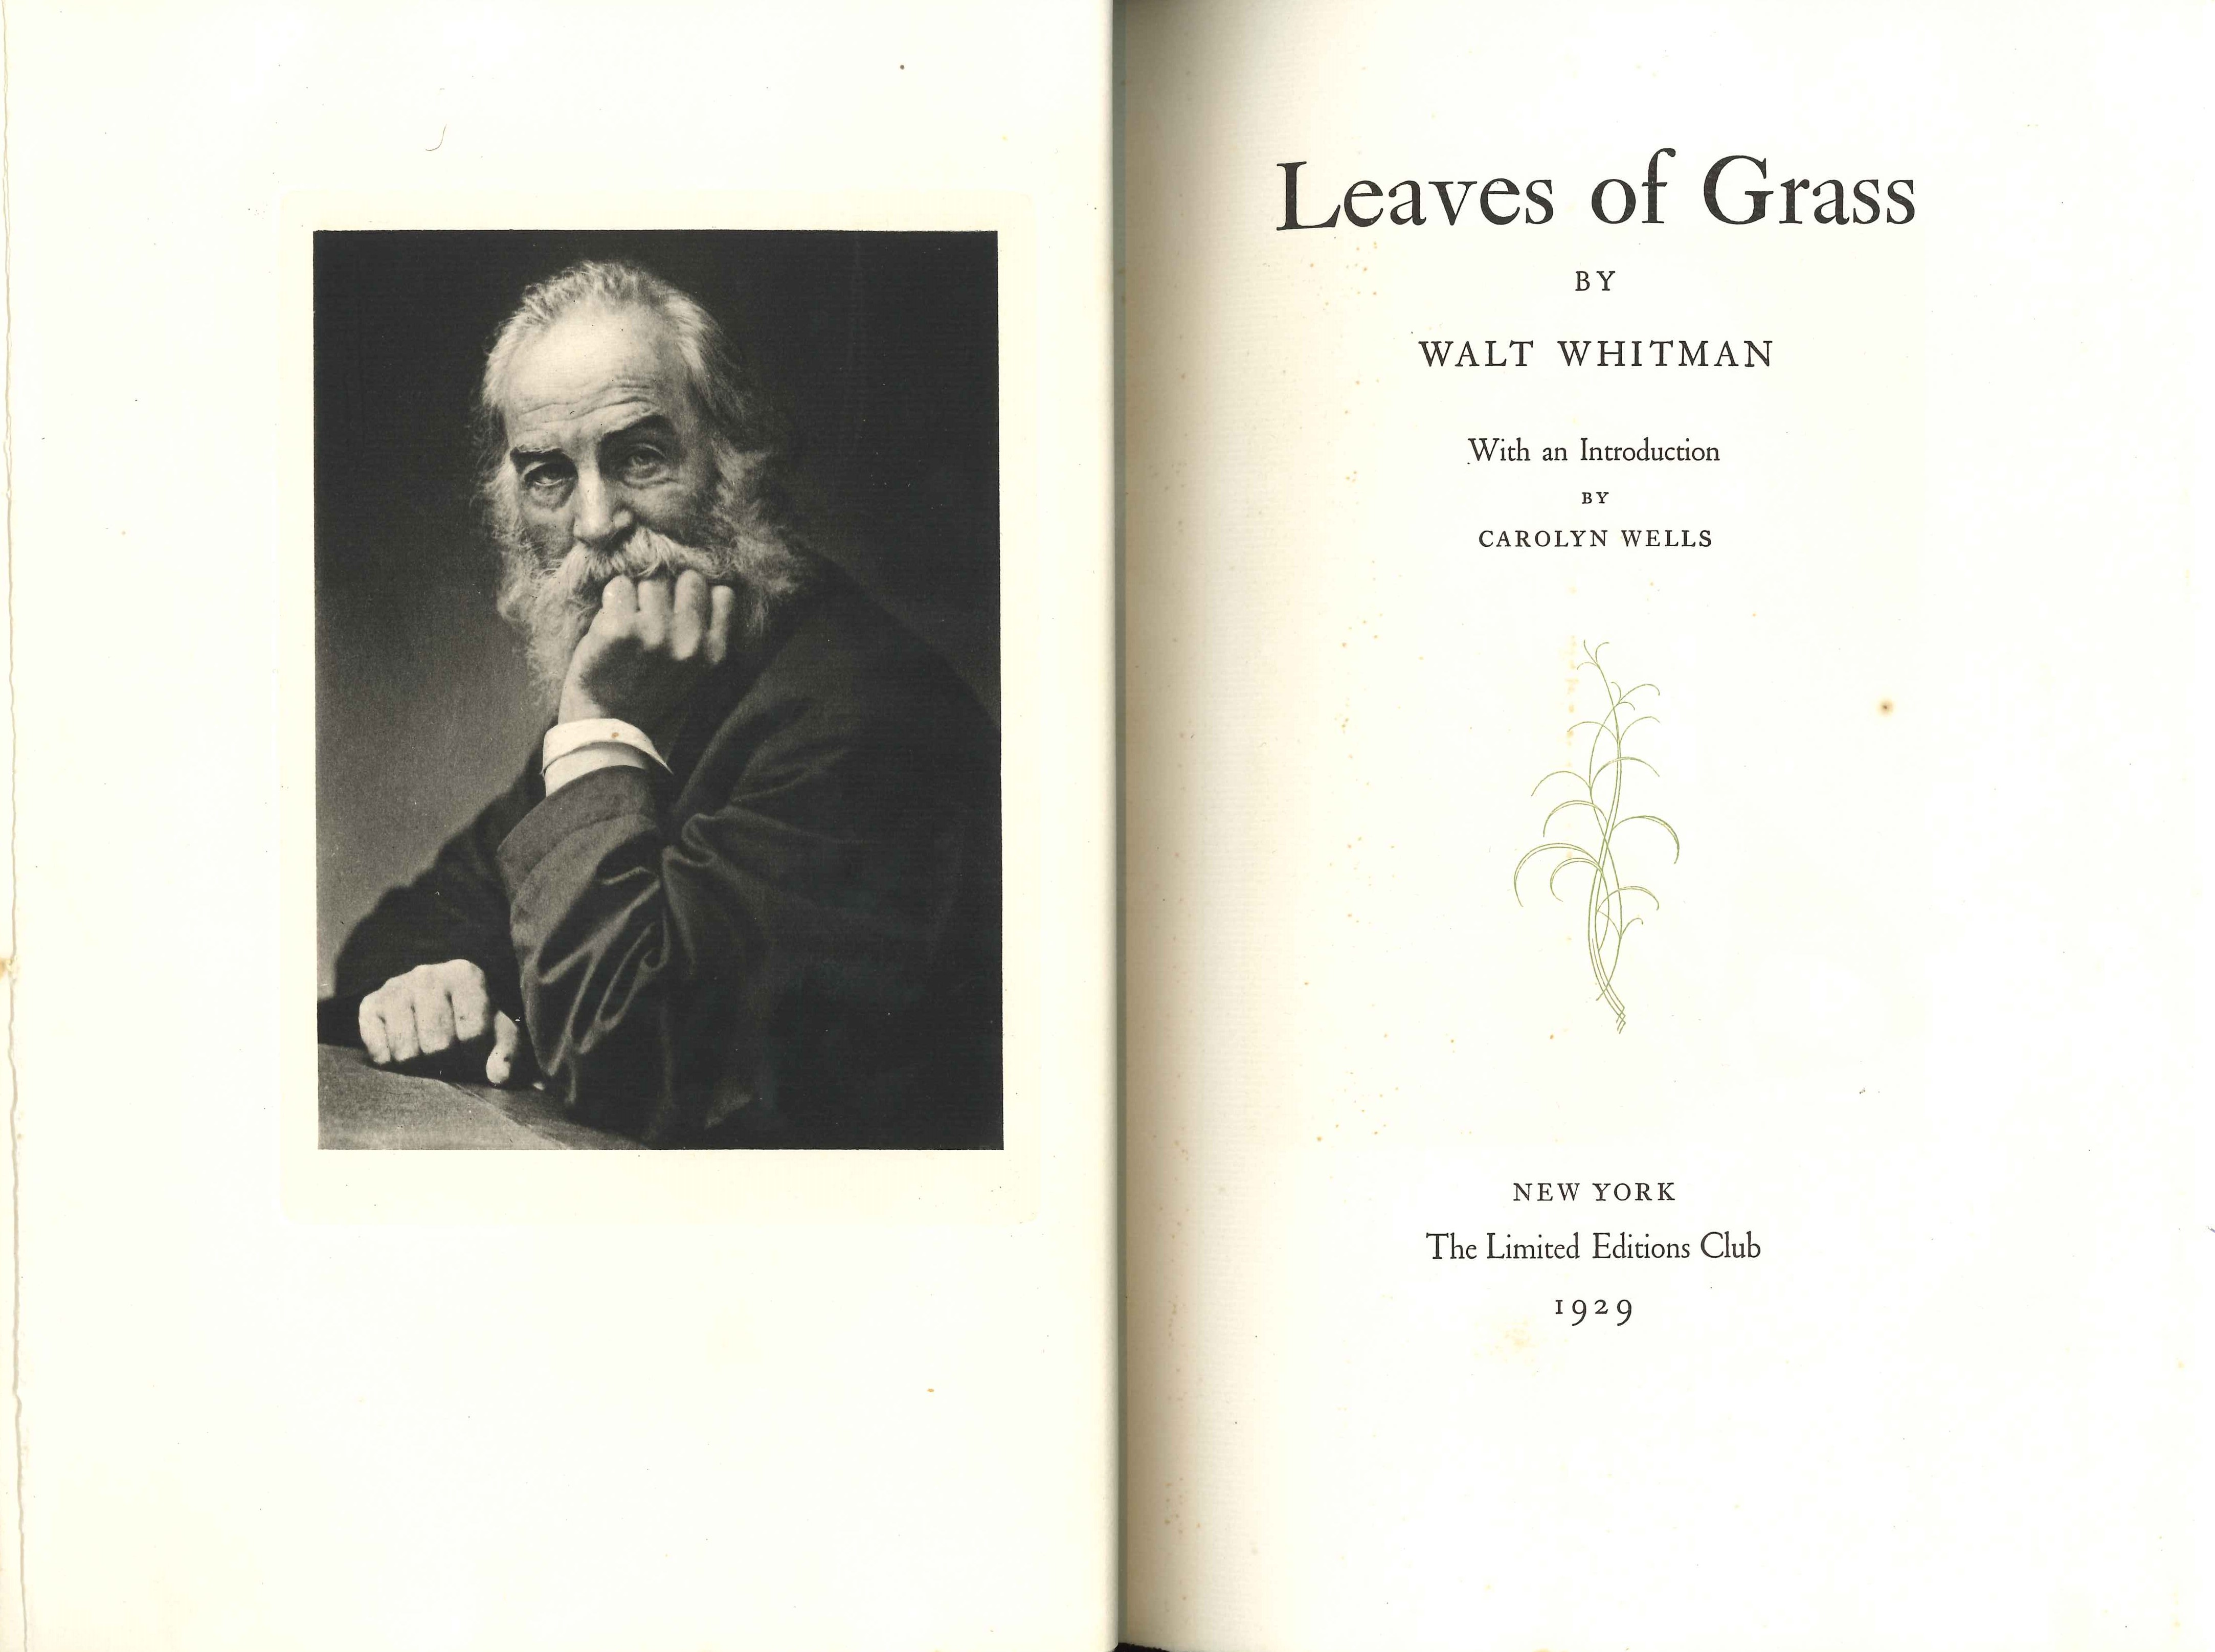 Walt Whitman. Leaves of Grass. New York: Limited Editions Club, 1929.